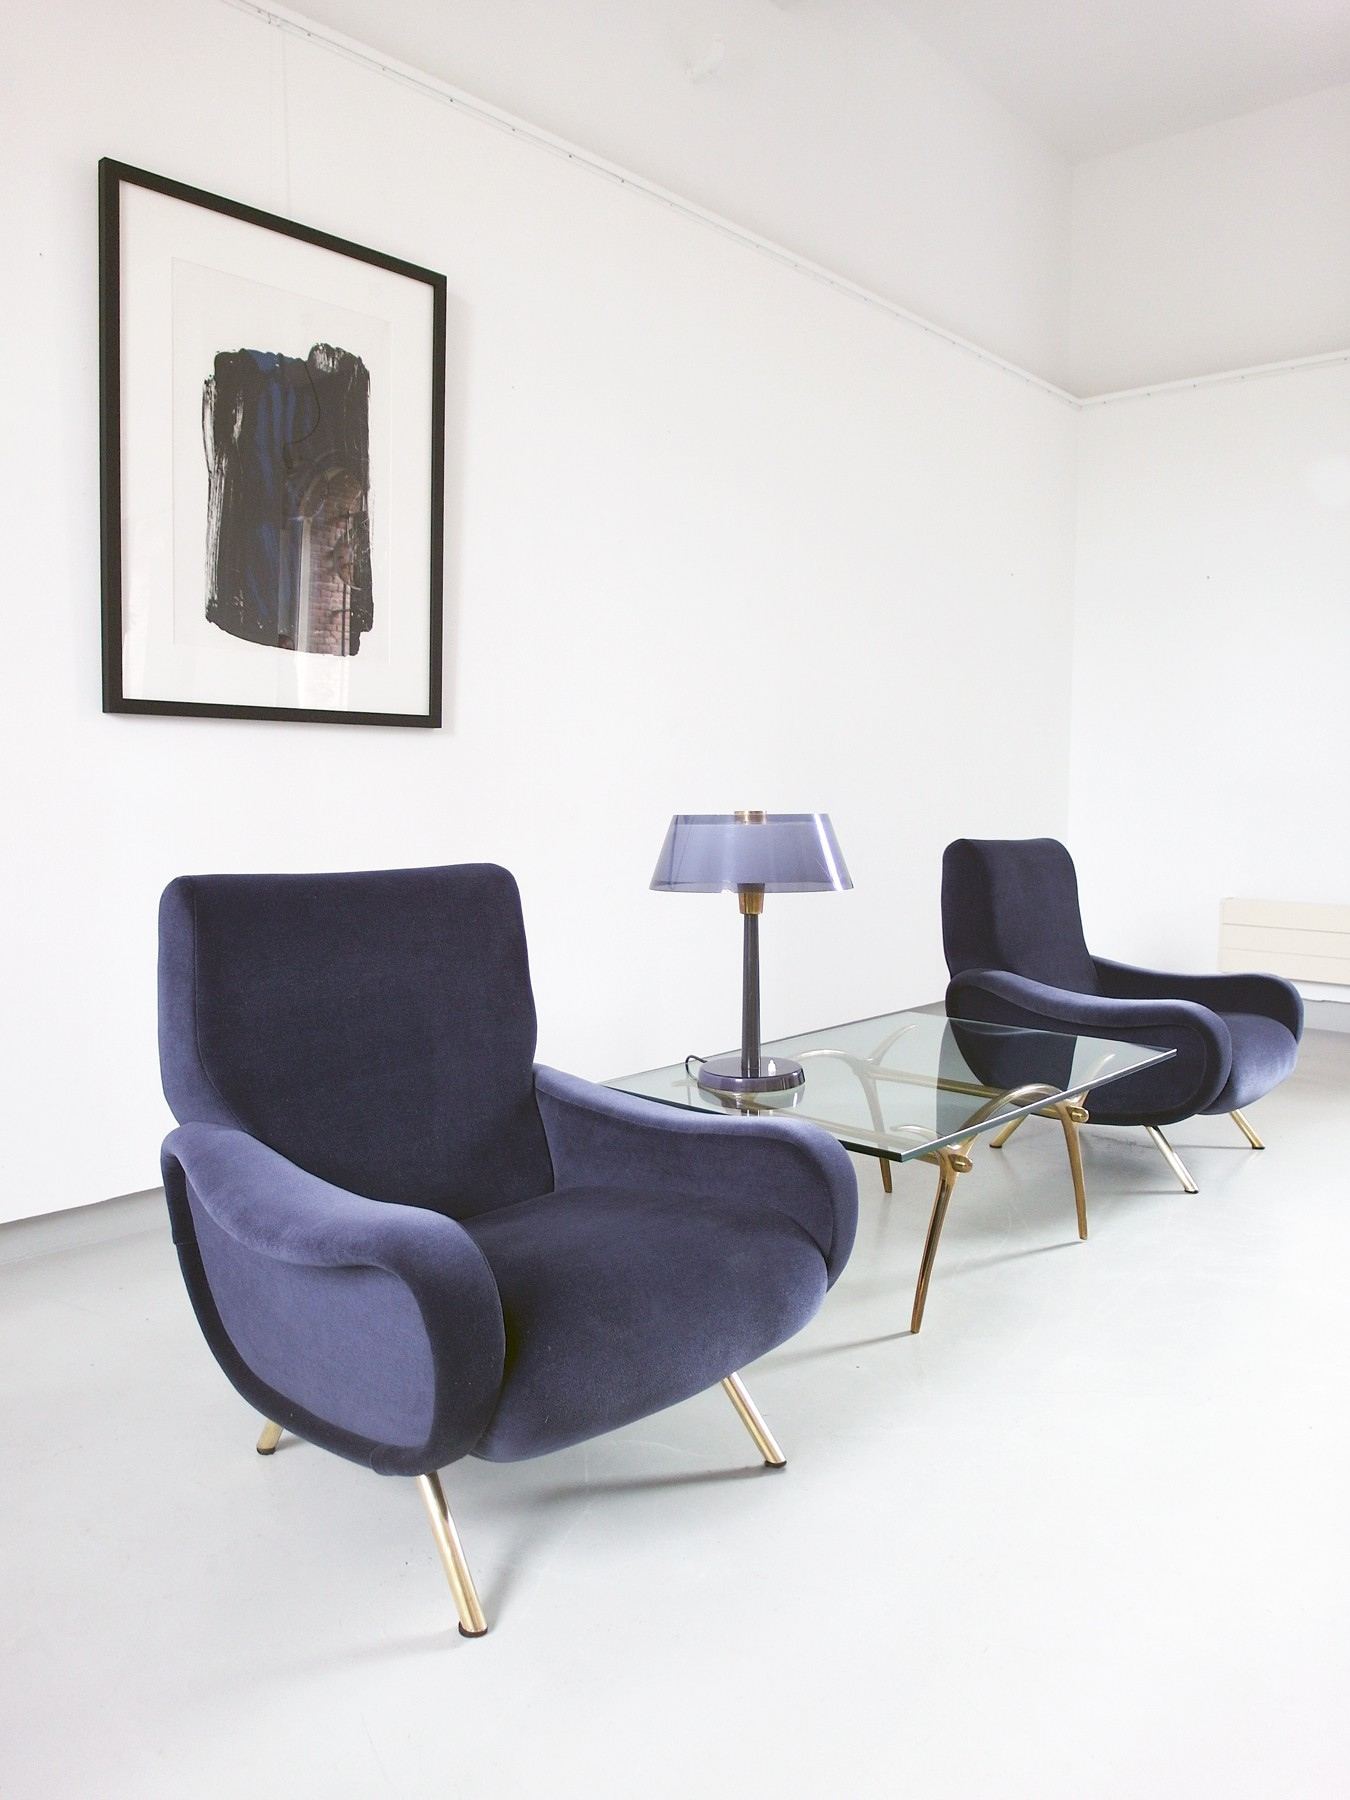 Pair Of Lady Chairs By Marco Zanuso For Arflex 1951